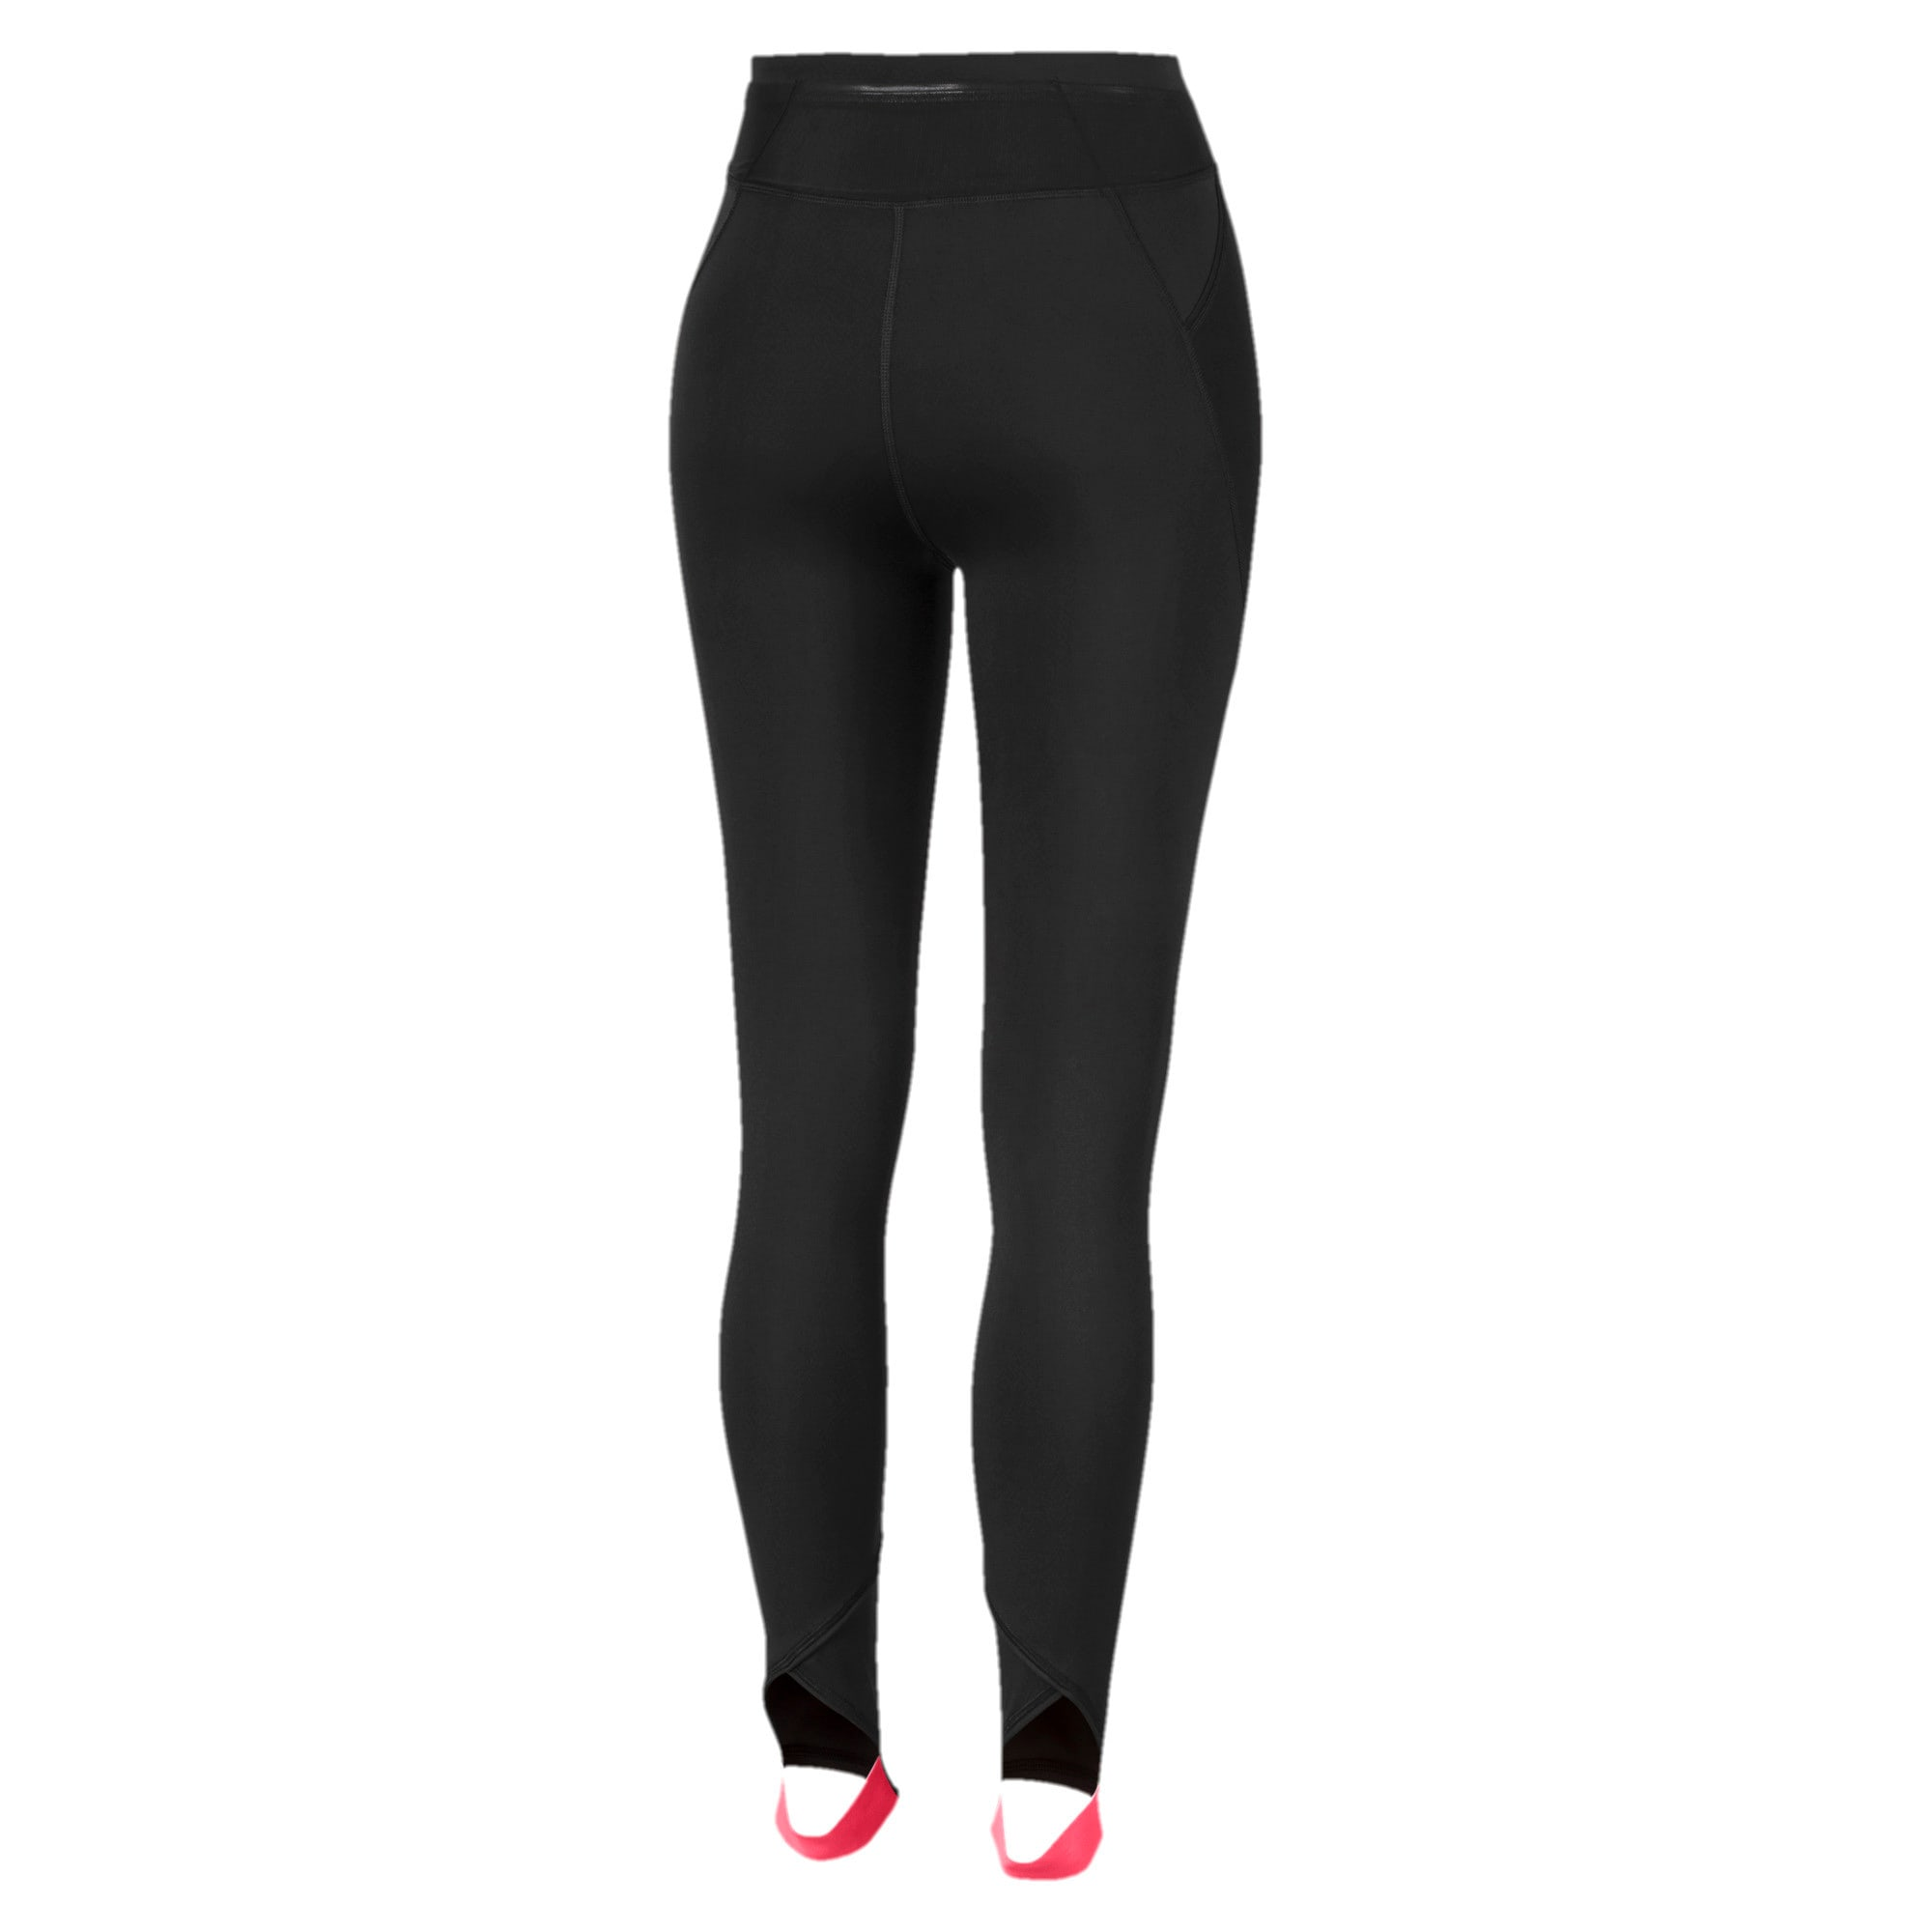 Thumbnail 5 of HIT Feel It 7/8 Women's Training Leggings, Puma Black-Pink Alert, medium